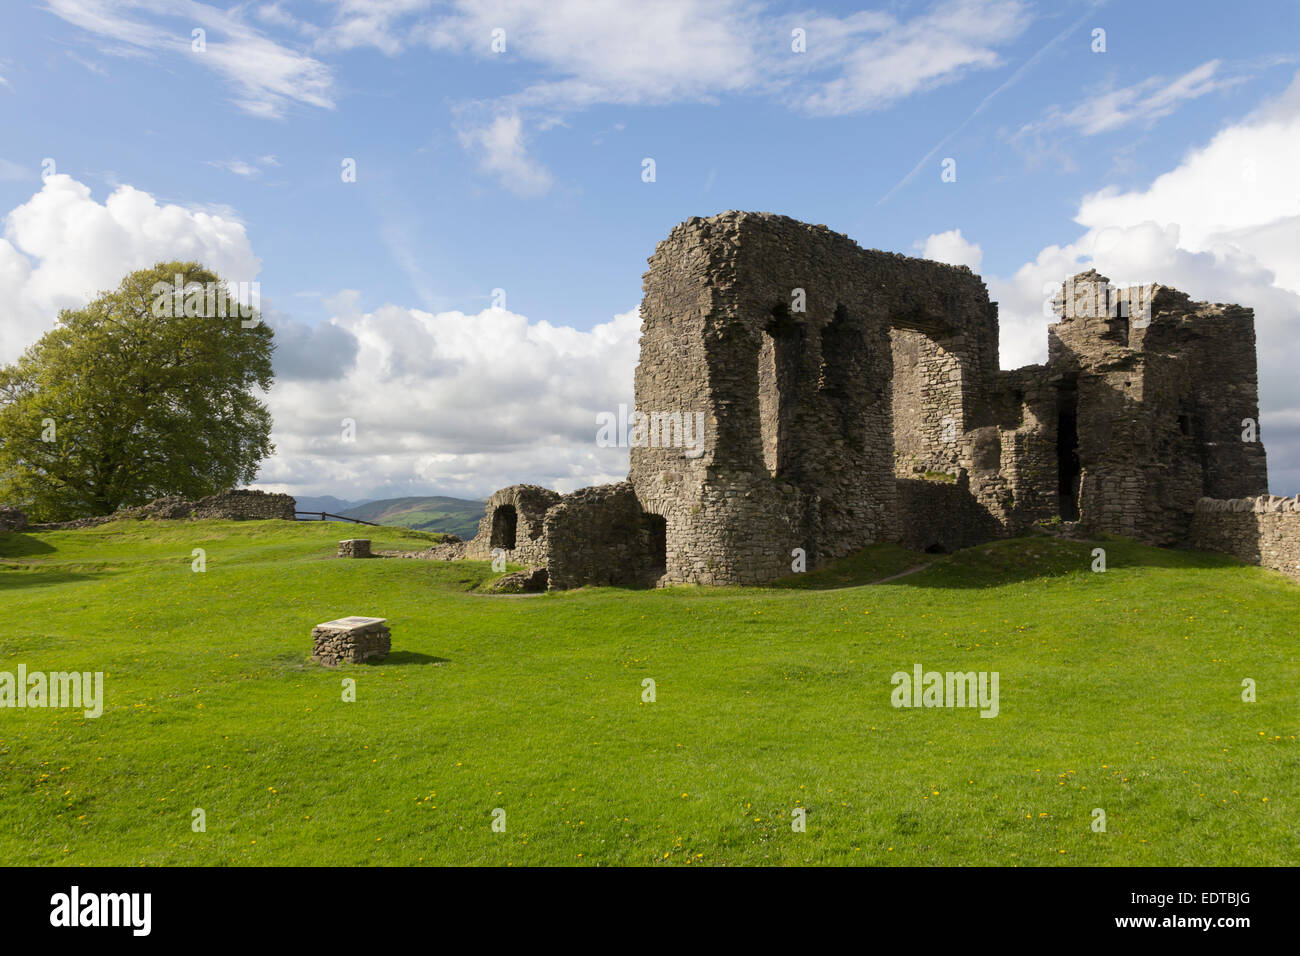 Kendal in the Lake District with a section of the ruin manor house at Kendal Castle, Cumbria. The long-ruined castle - Stock Image